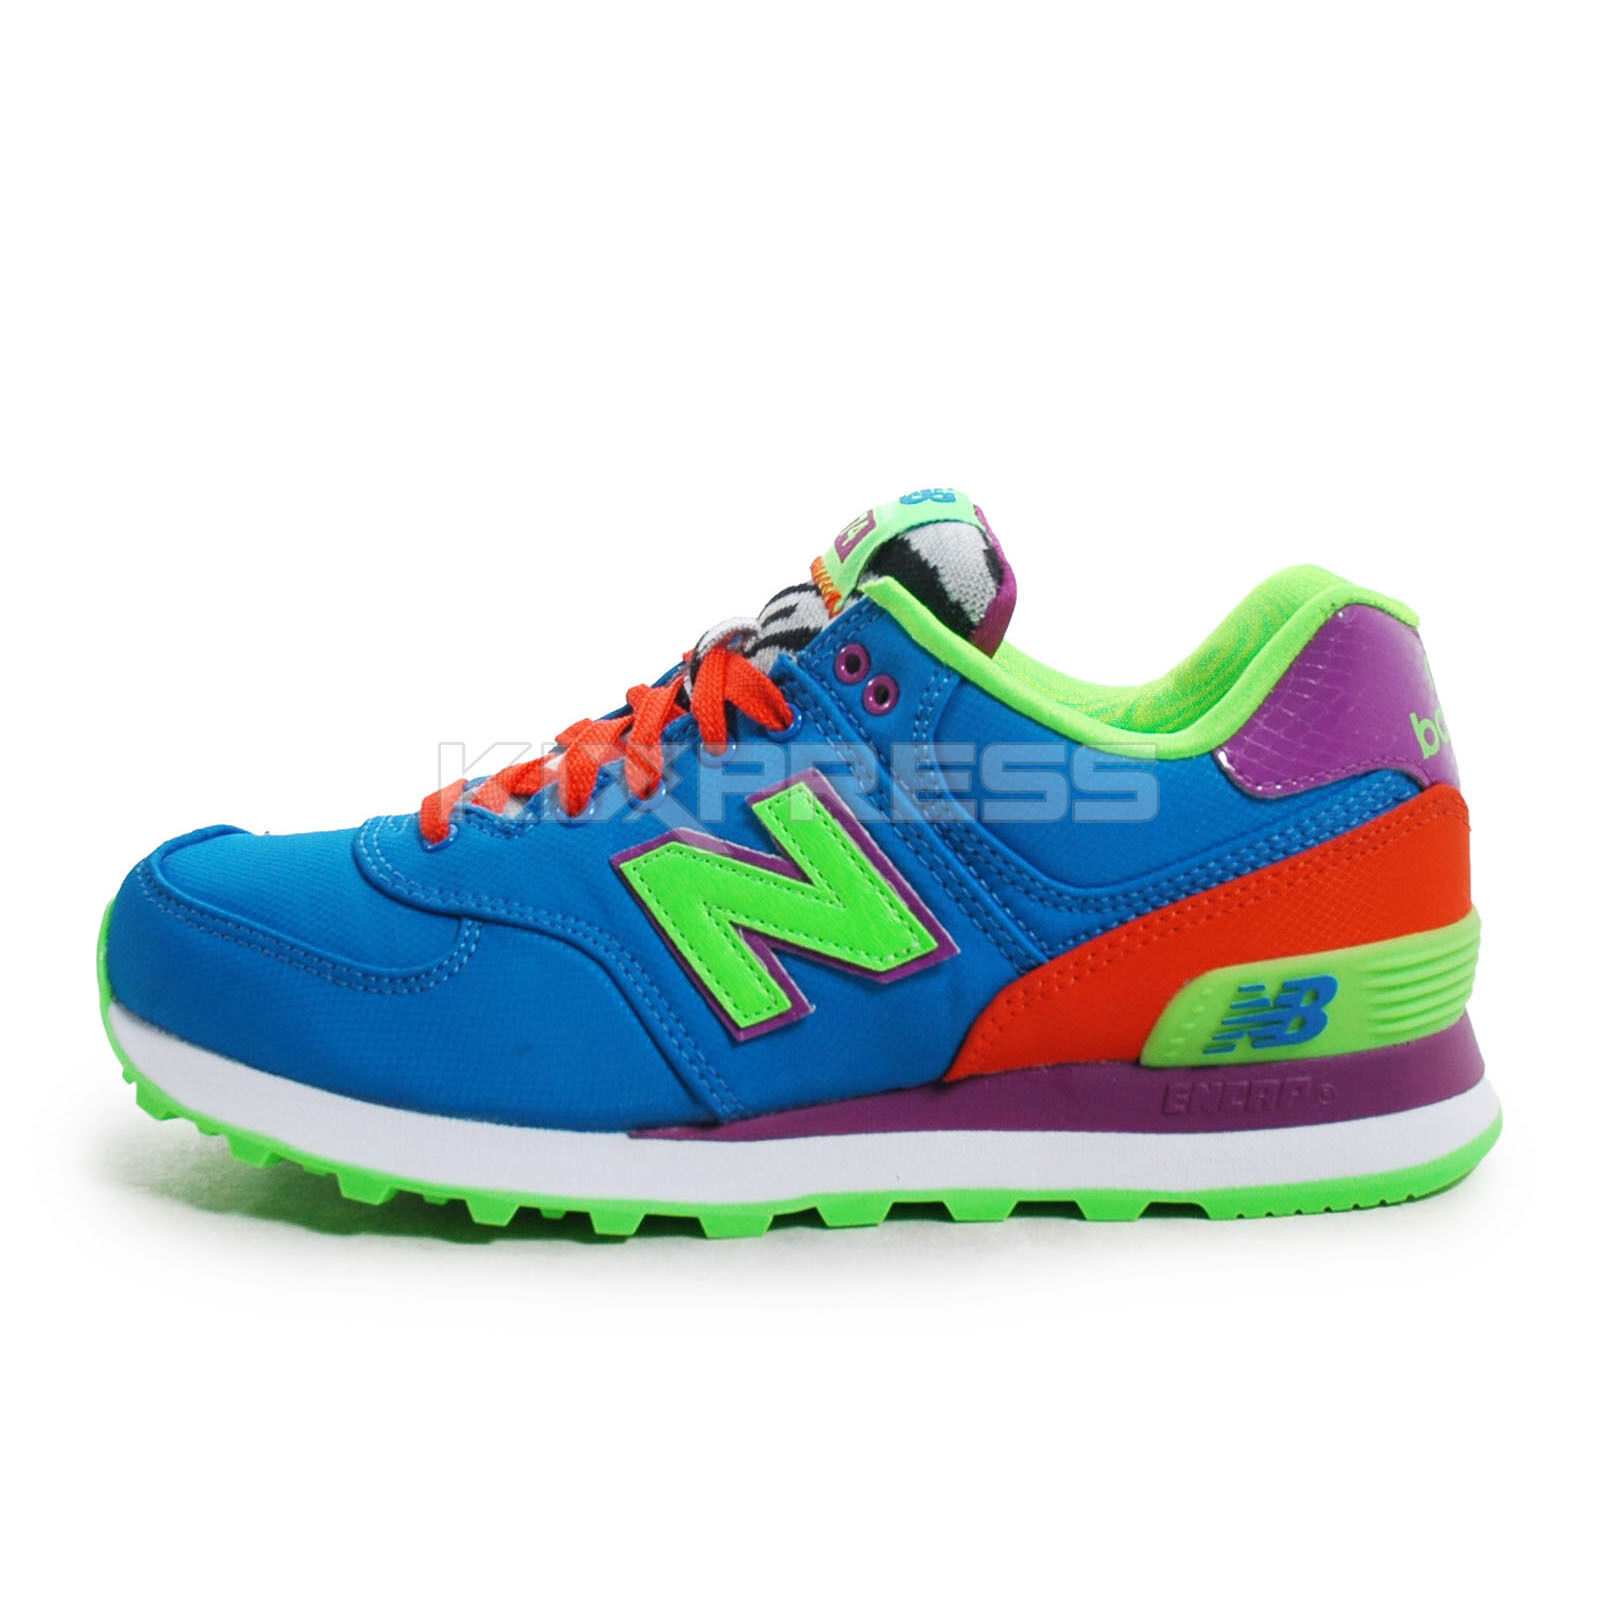 New Balance WL574  Classic Running Game bluee Electric Green